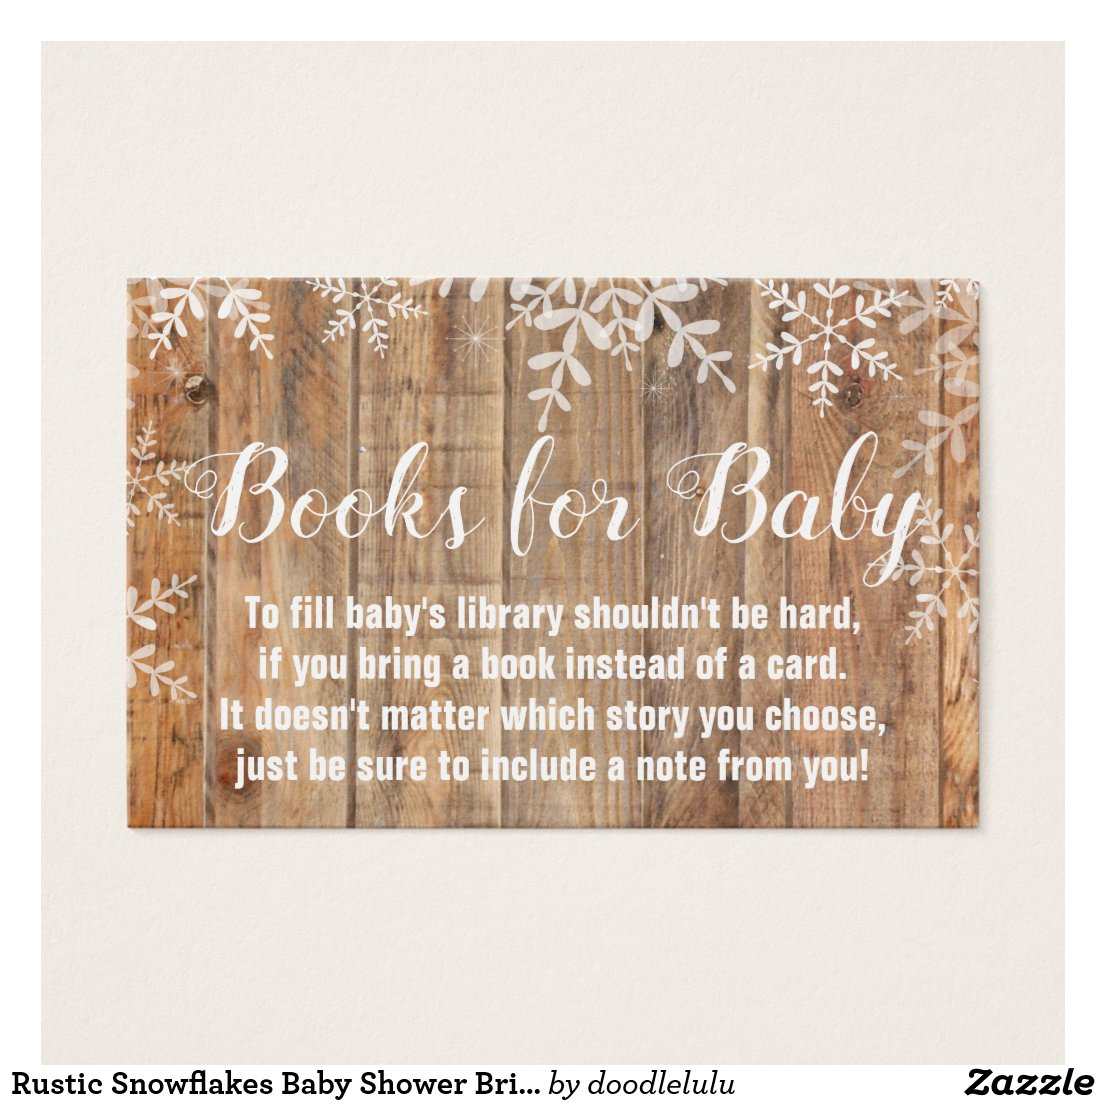 Rustic Snowflakes Baby Shower Bring a Book